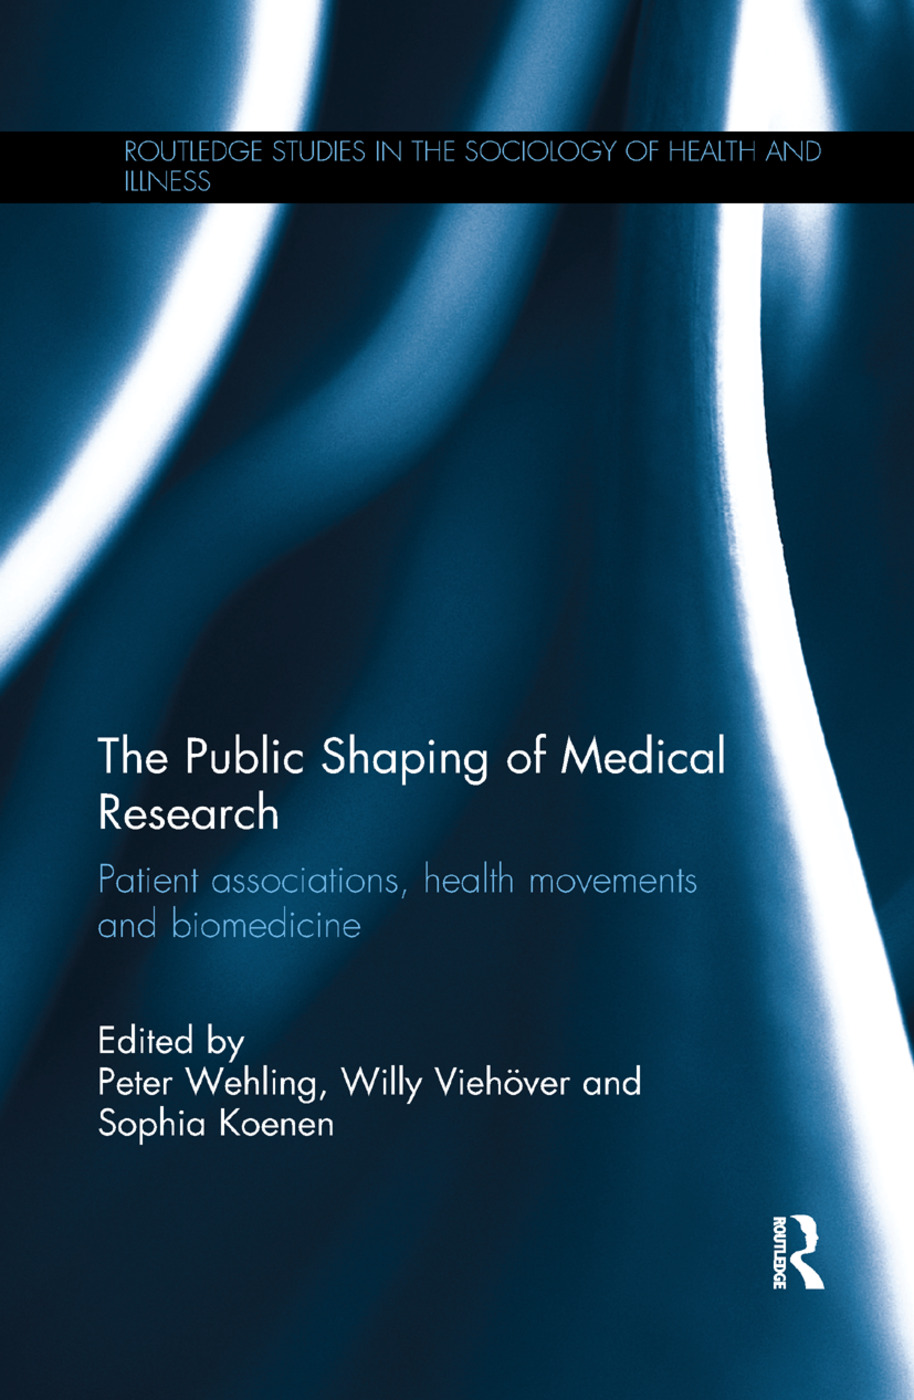 The Public Shaping of Medical Research